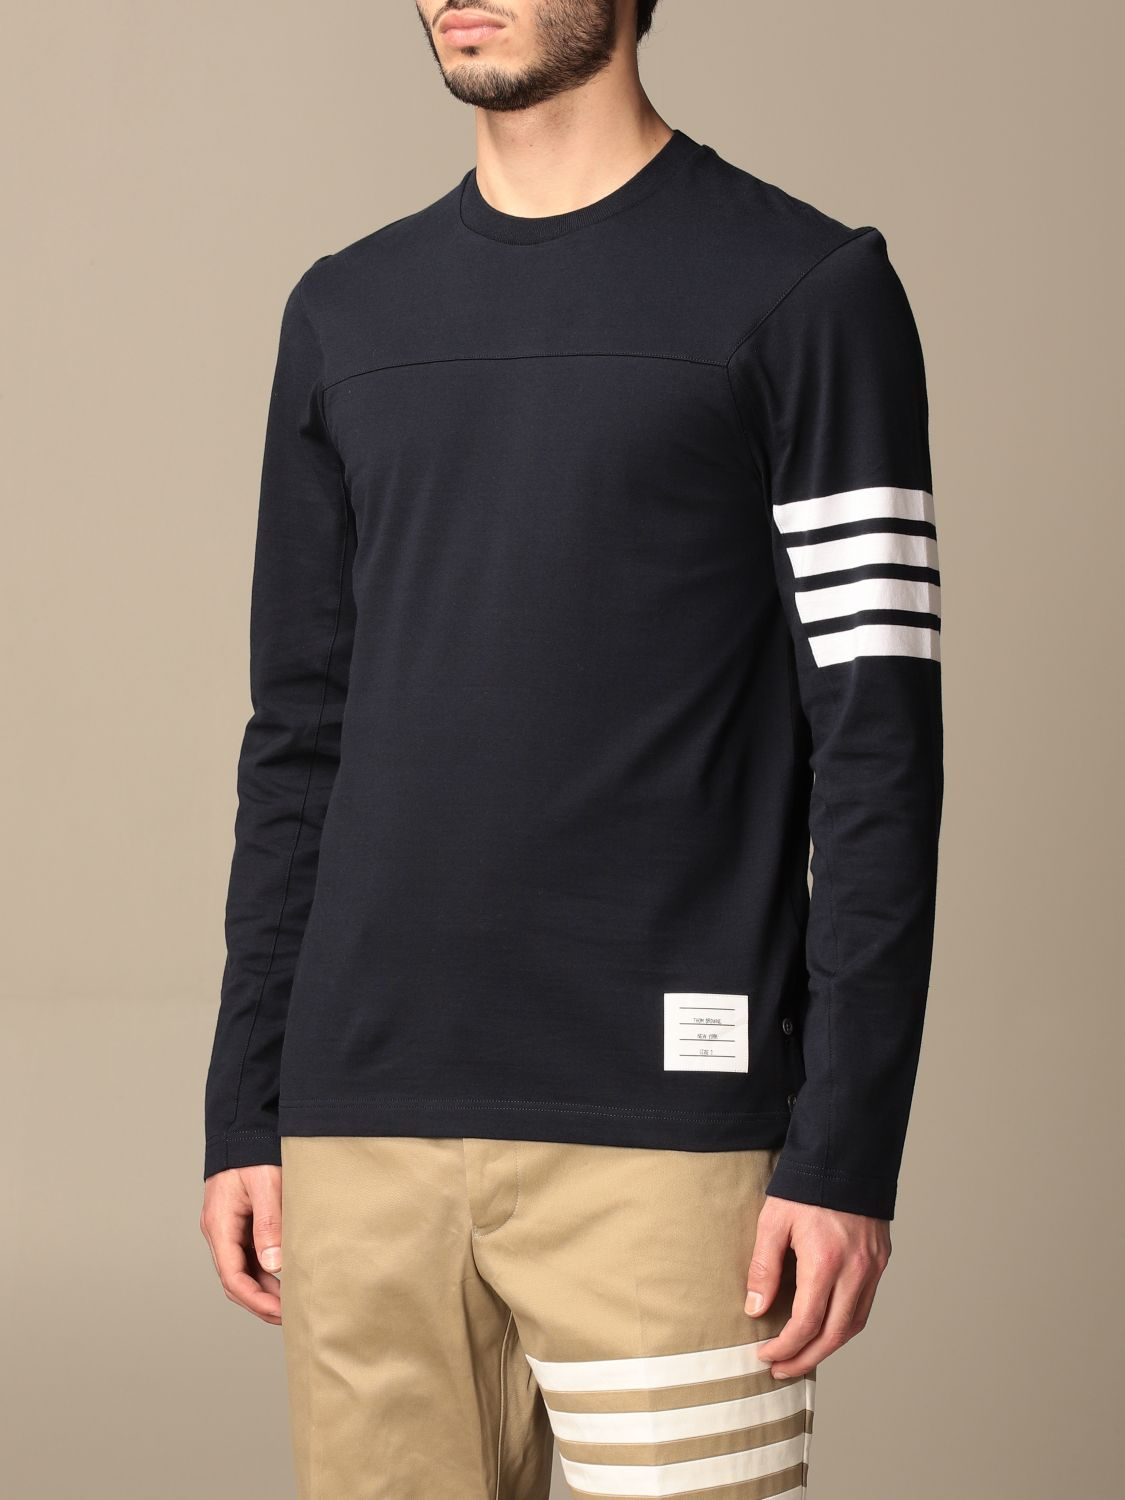 T-shirt Thom Browne: T-shirt Thom Browne in cotone con dettaglio a righe blue navy 4